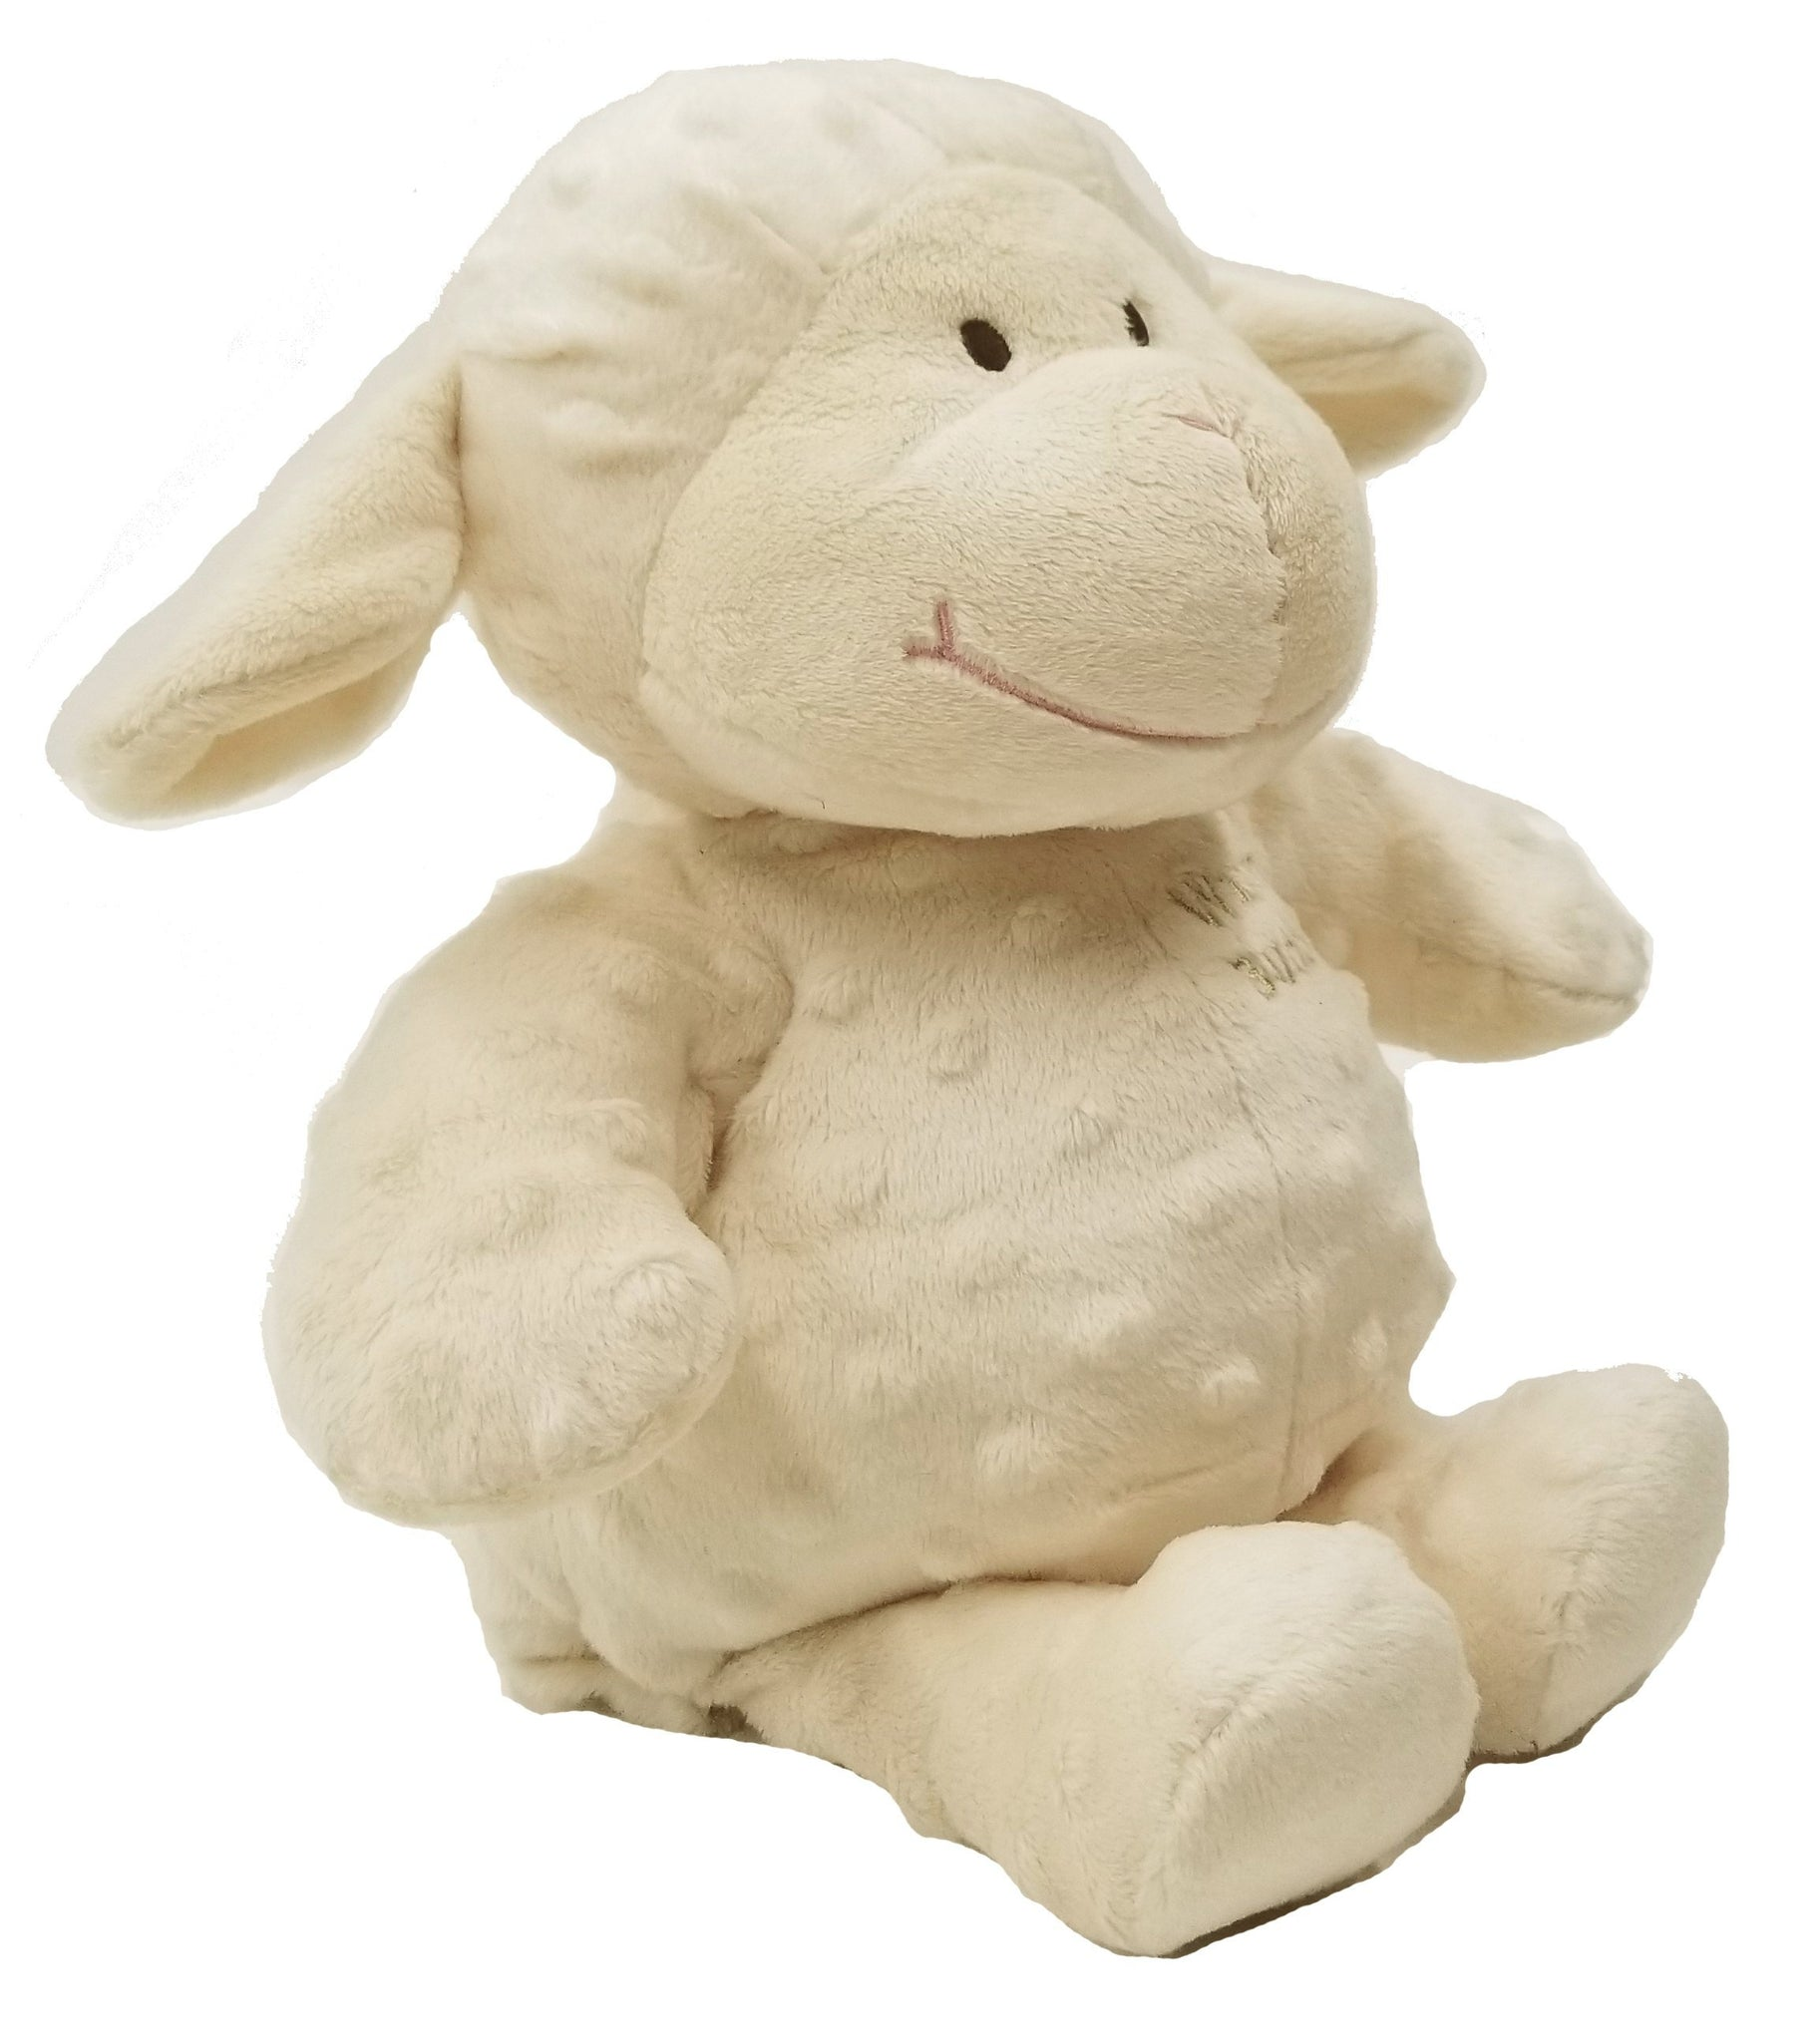 Baby Lamb Warm Stuffed Puppet Cream Fur W Microwavable Inner Heat Pack